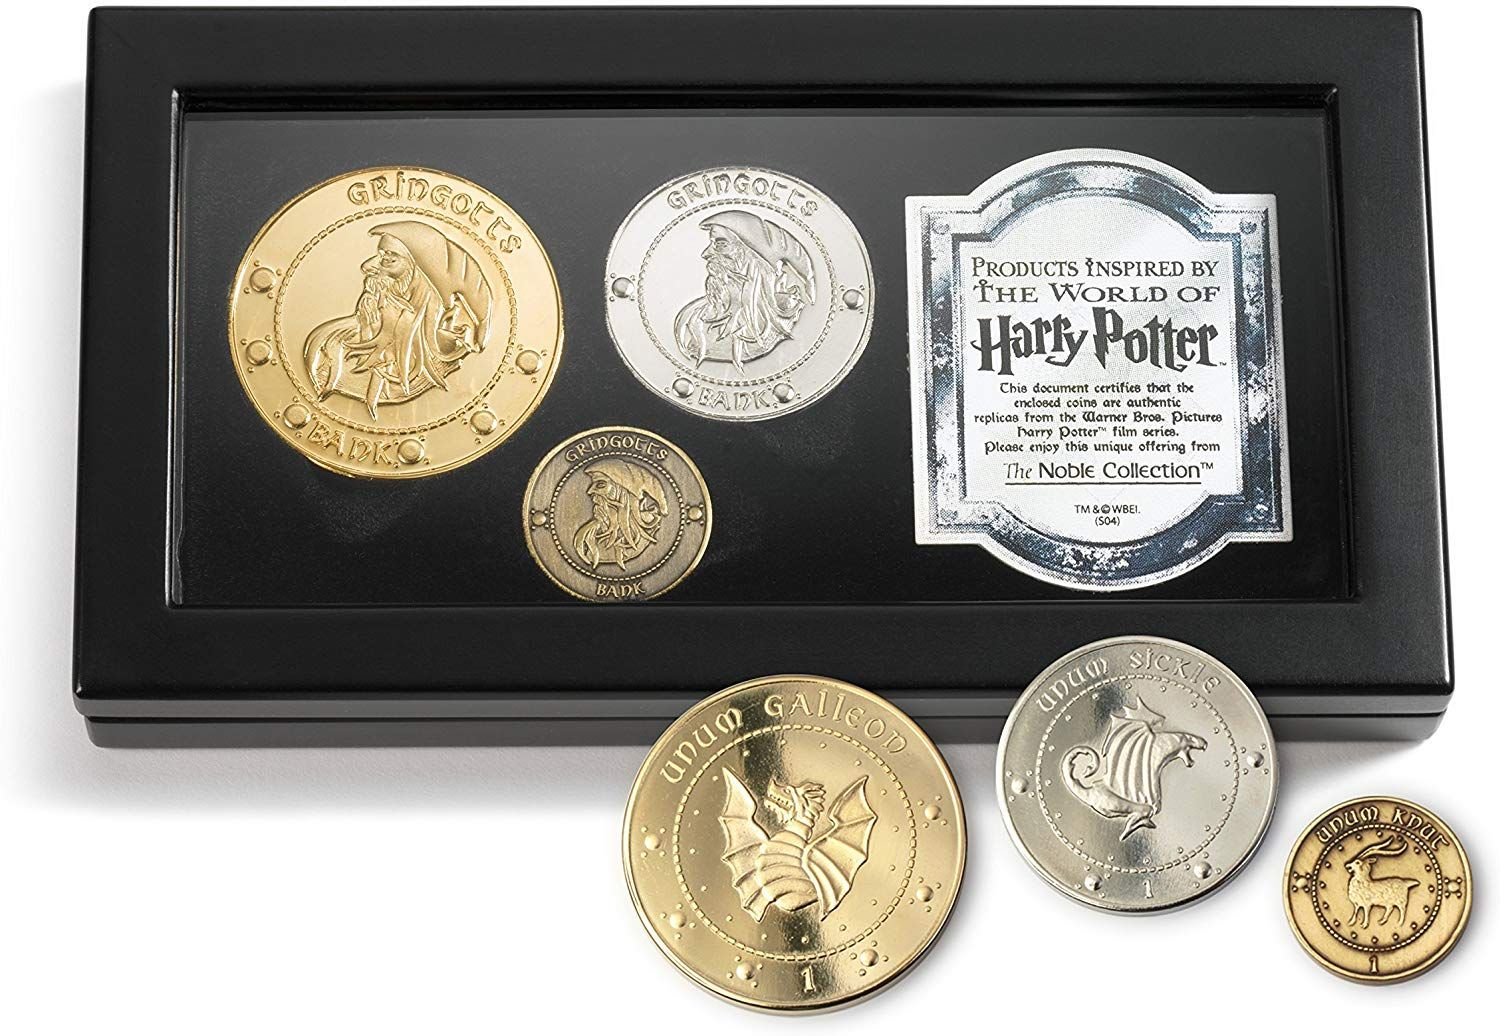 A set of gringotts bank coins beautifully recreated and